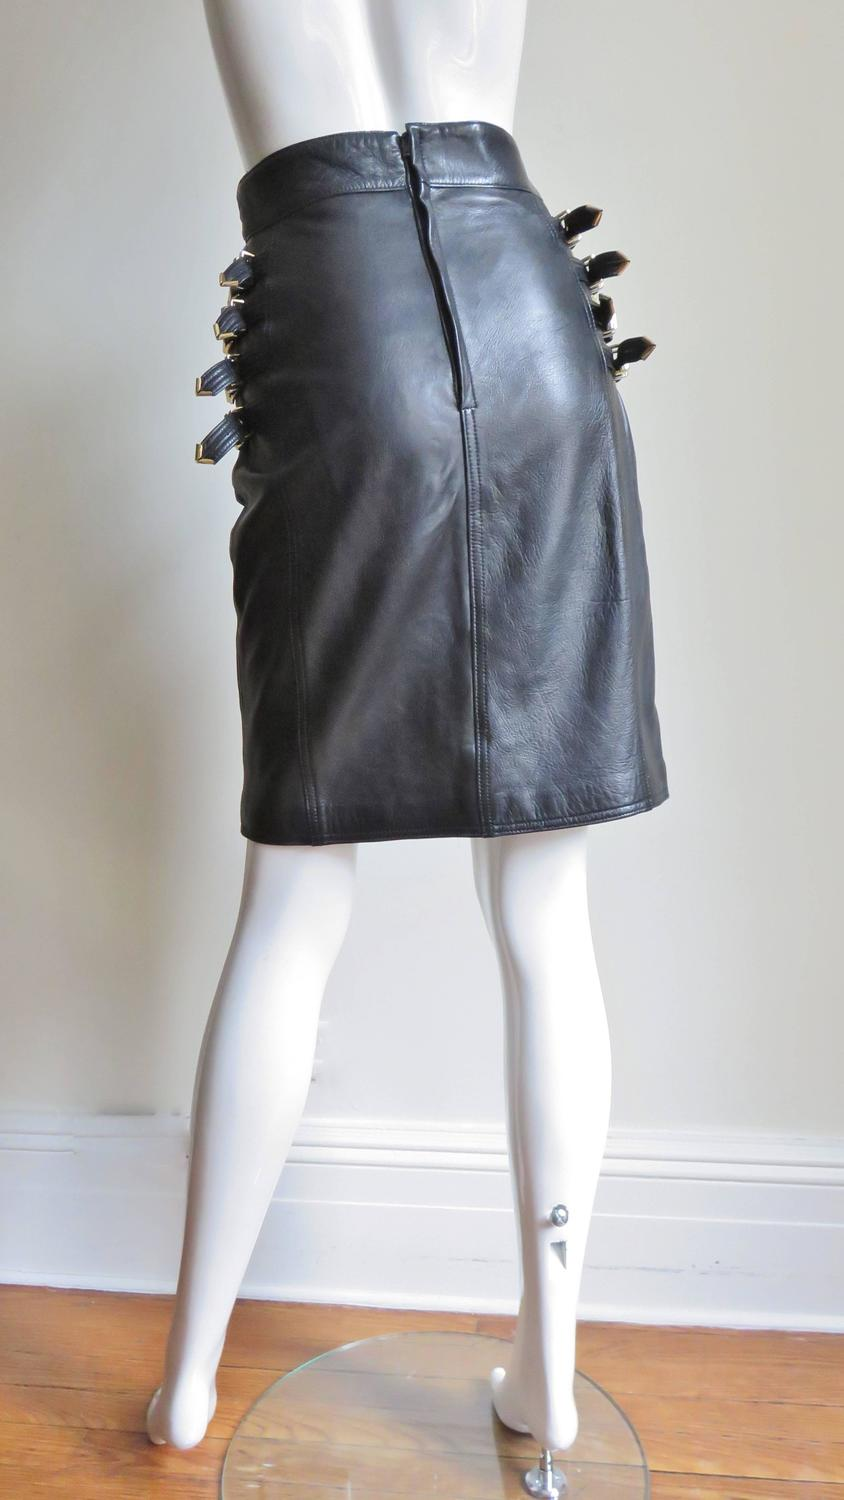 Iconic Gianni Versace Bondage Leather Skirt For Sale At